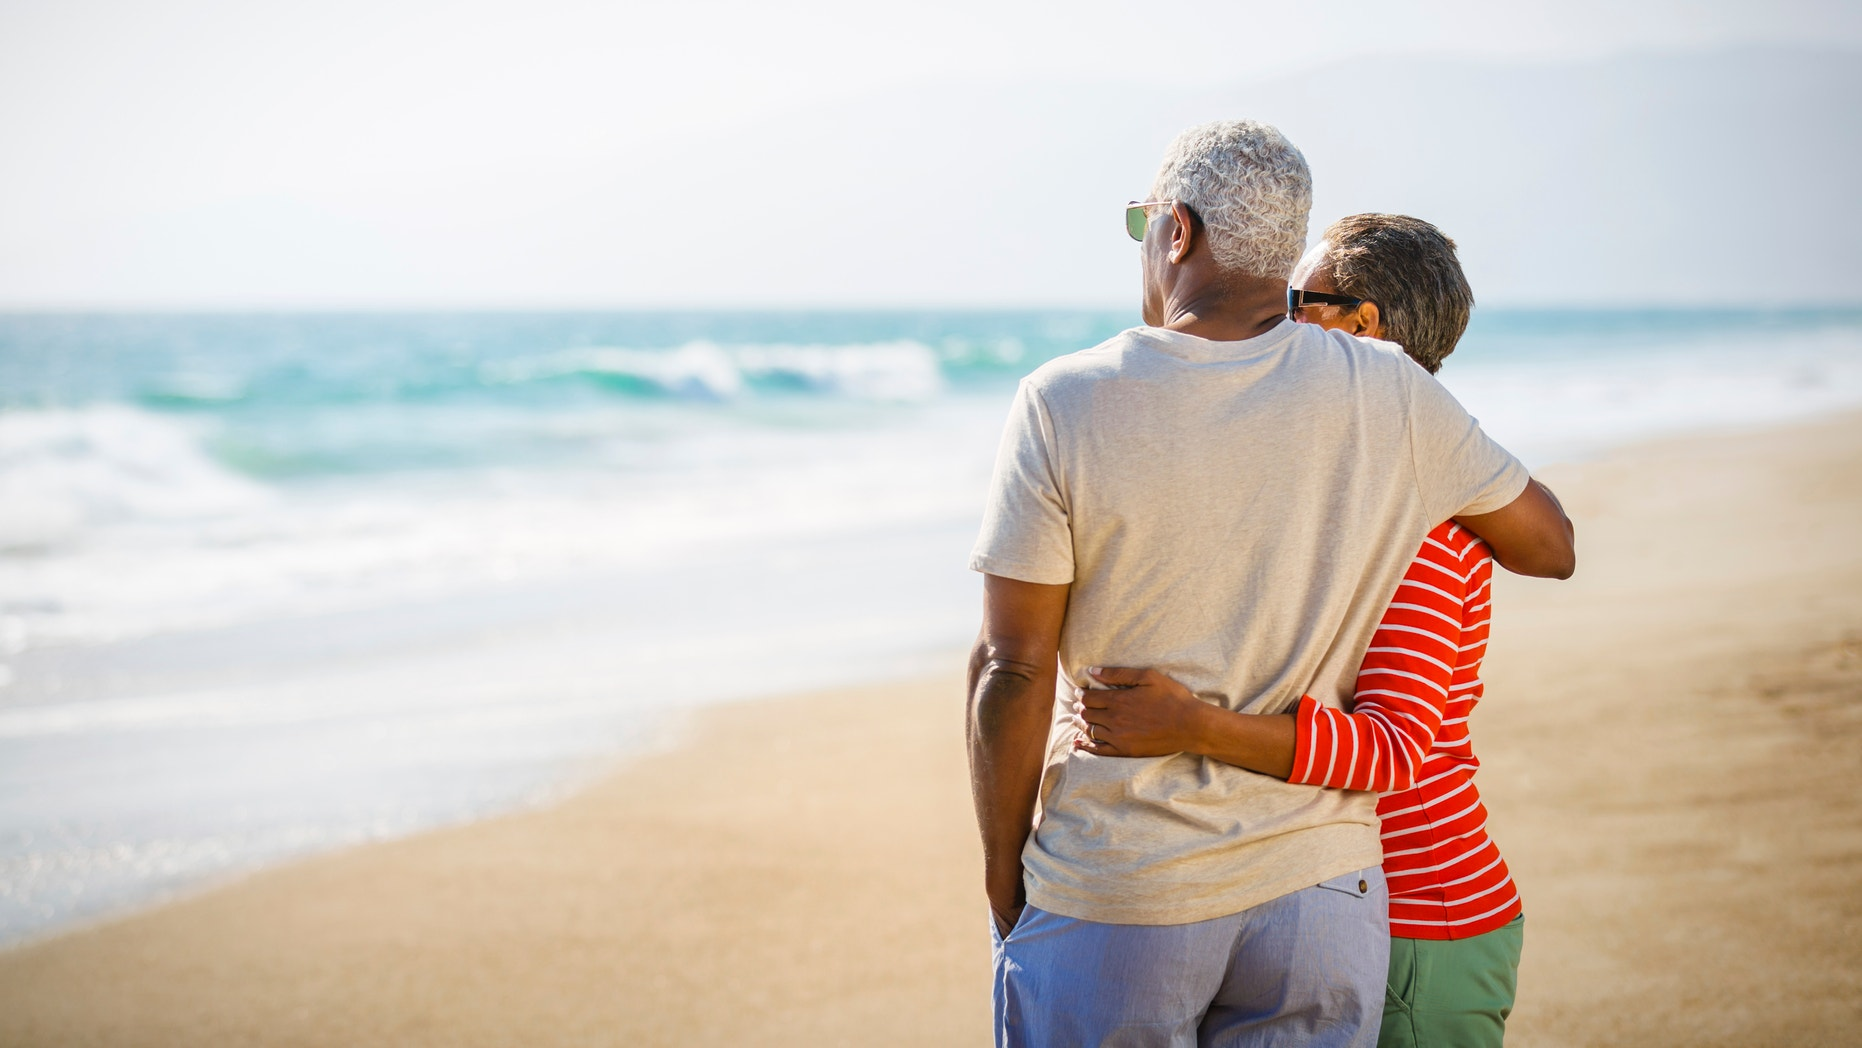 Senior African American couple embracing at sandy beach.